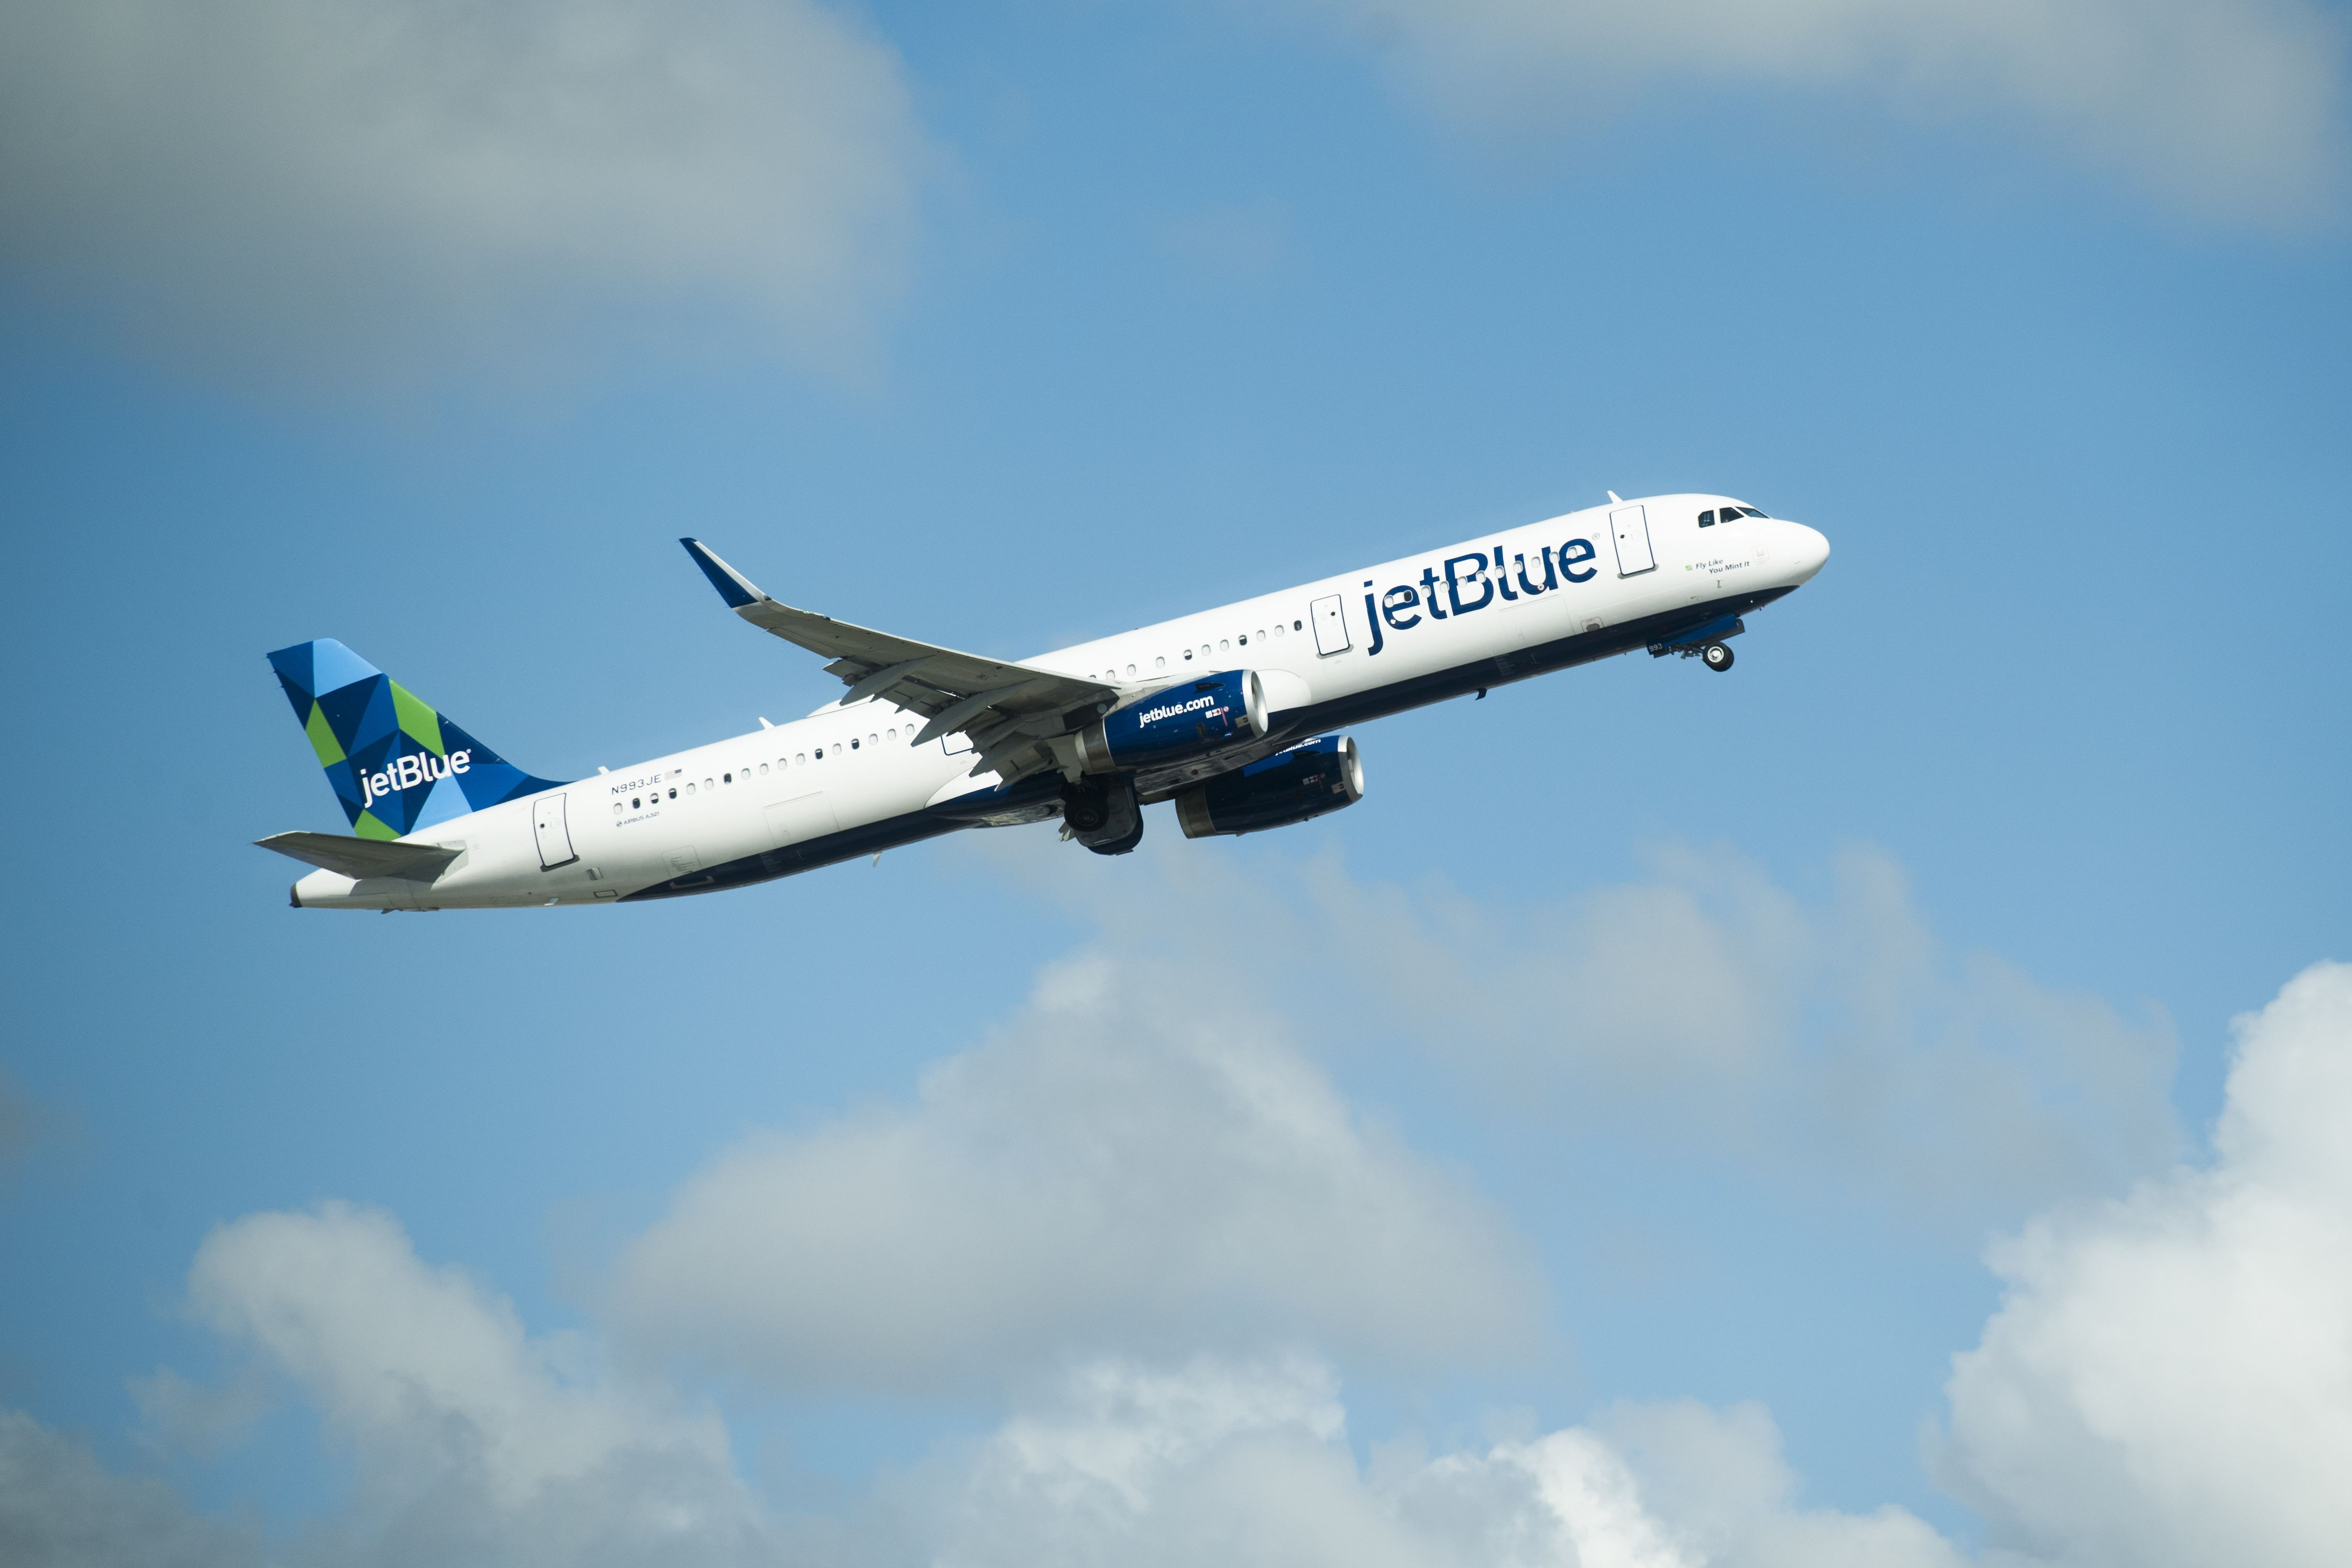 JetBlue plans more flights to Europe with new long-range Airbus jets